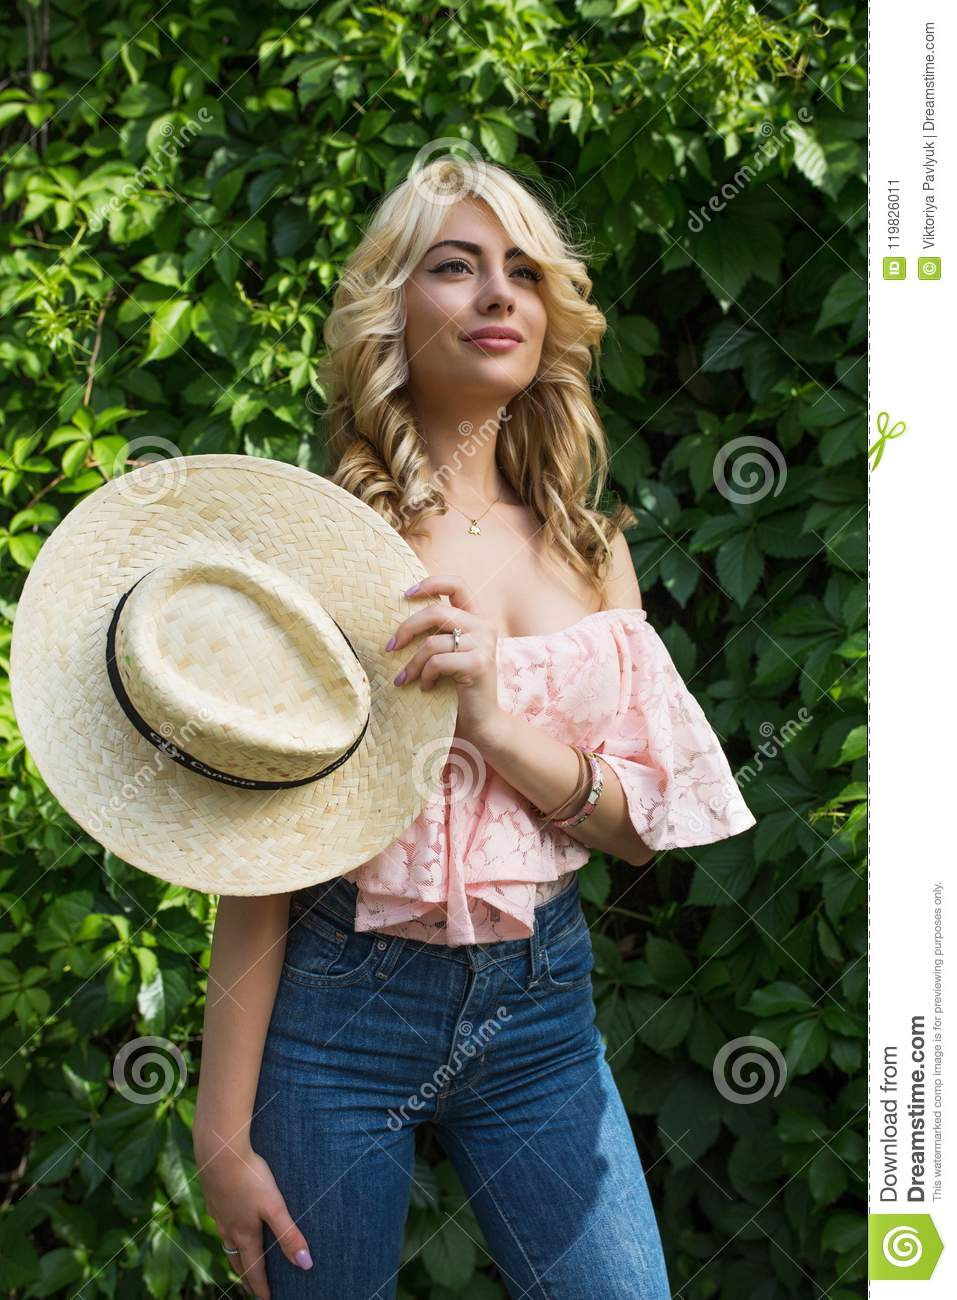 Gorgeous Young Woman Wearing Straw Hat And Lace Blouse With Nake